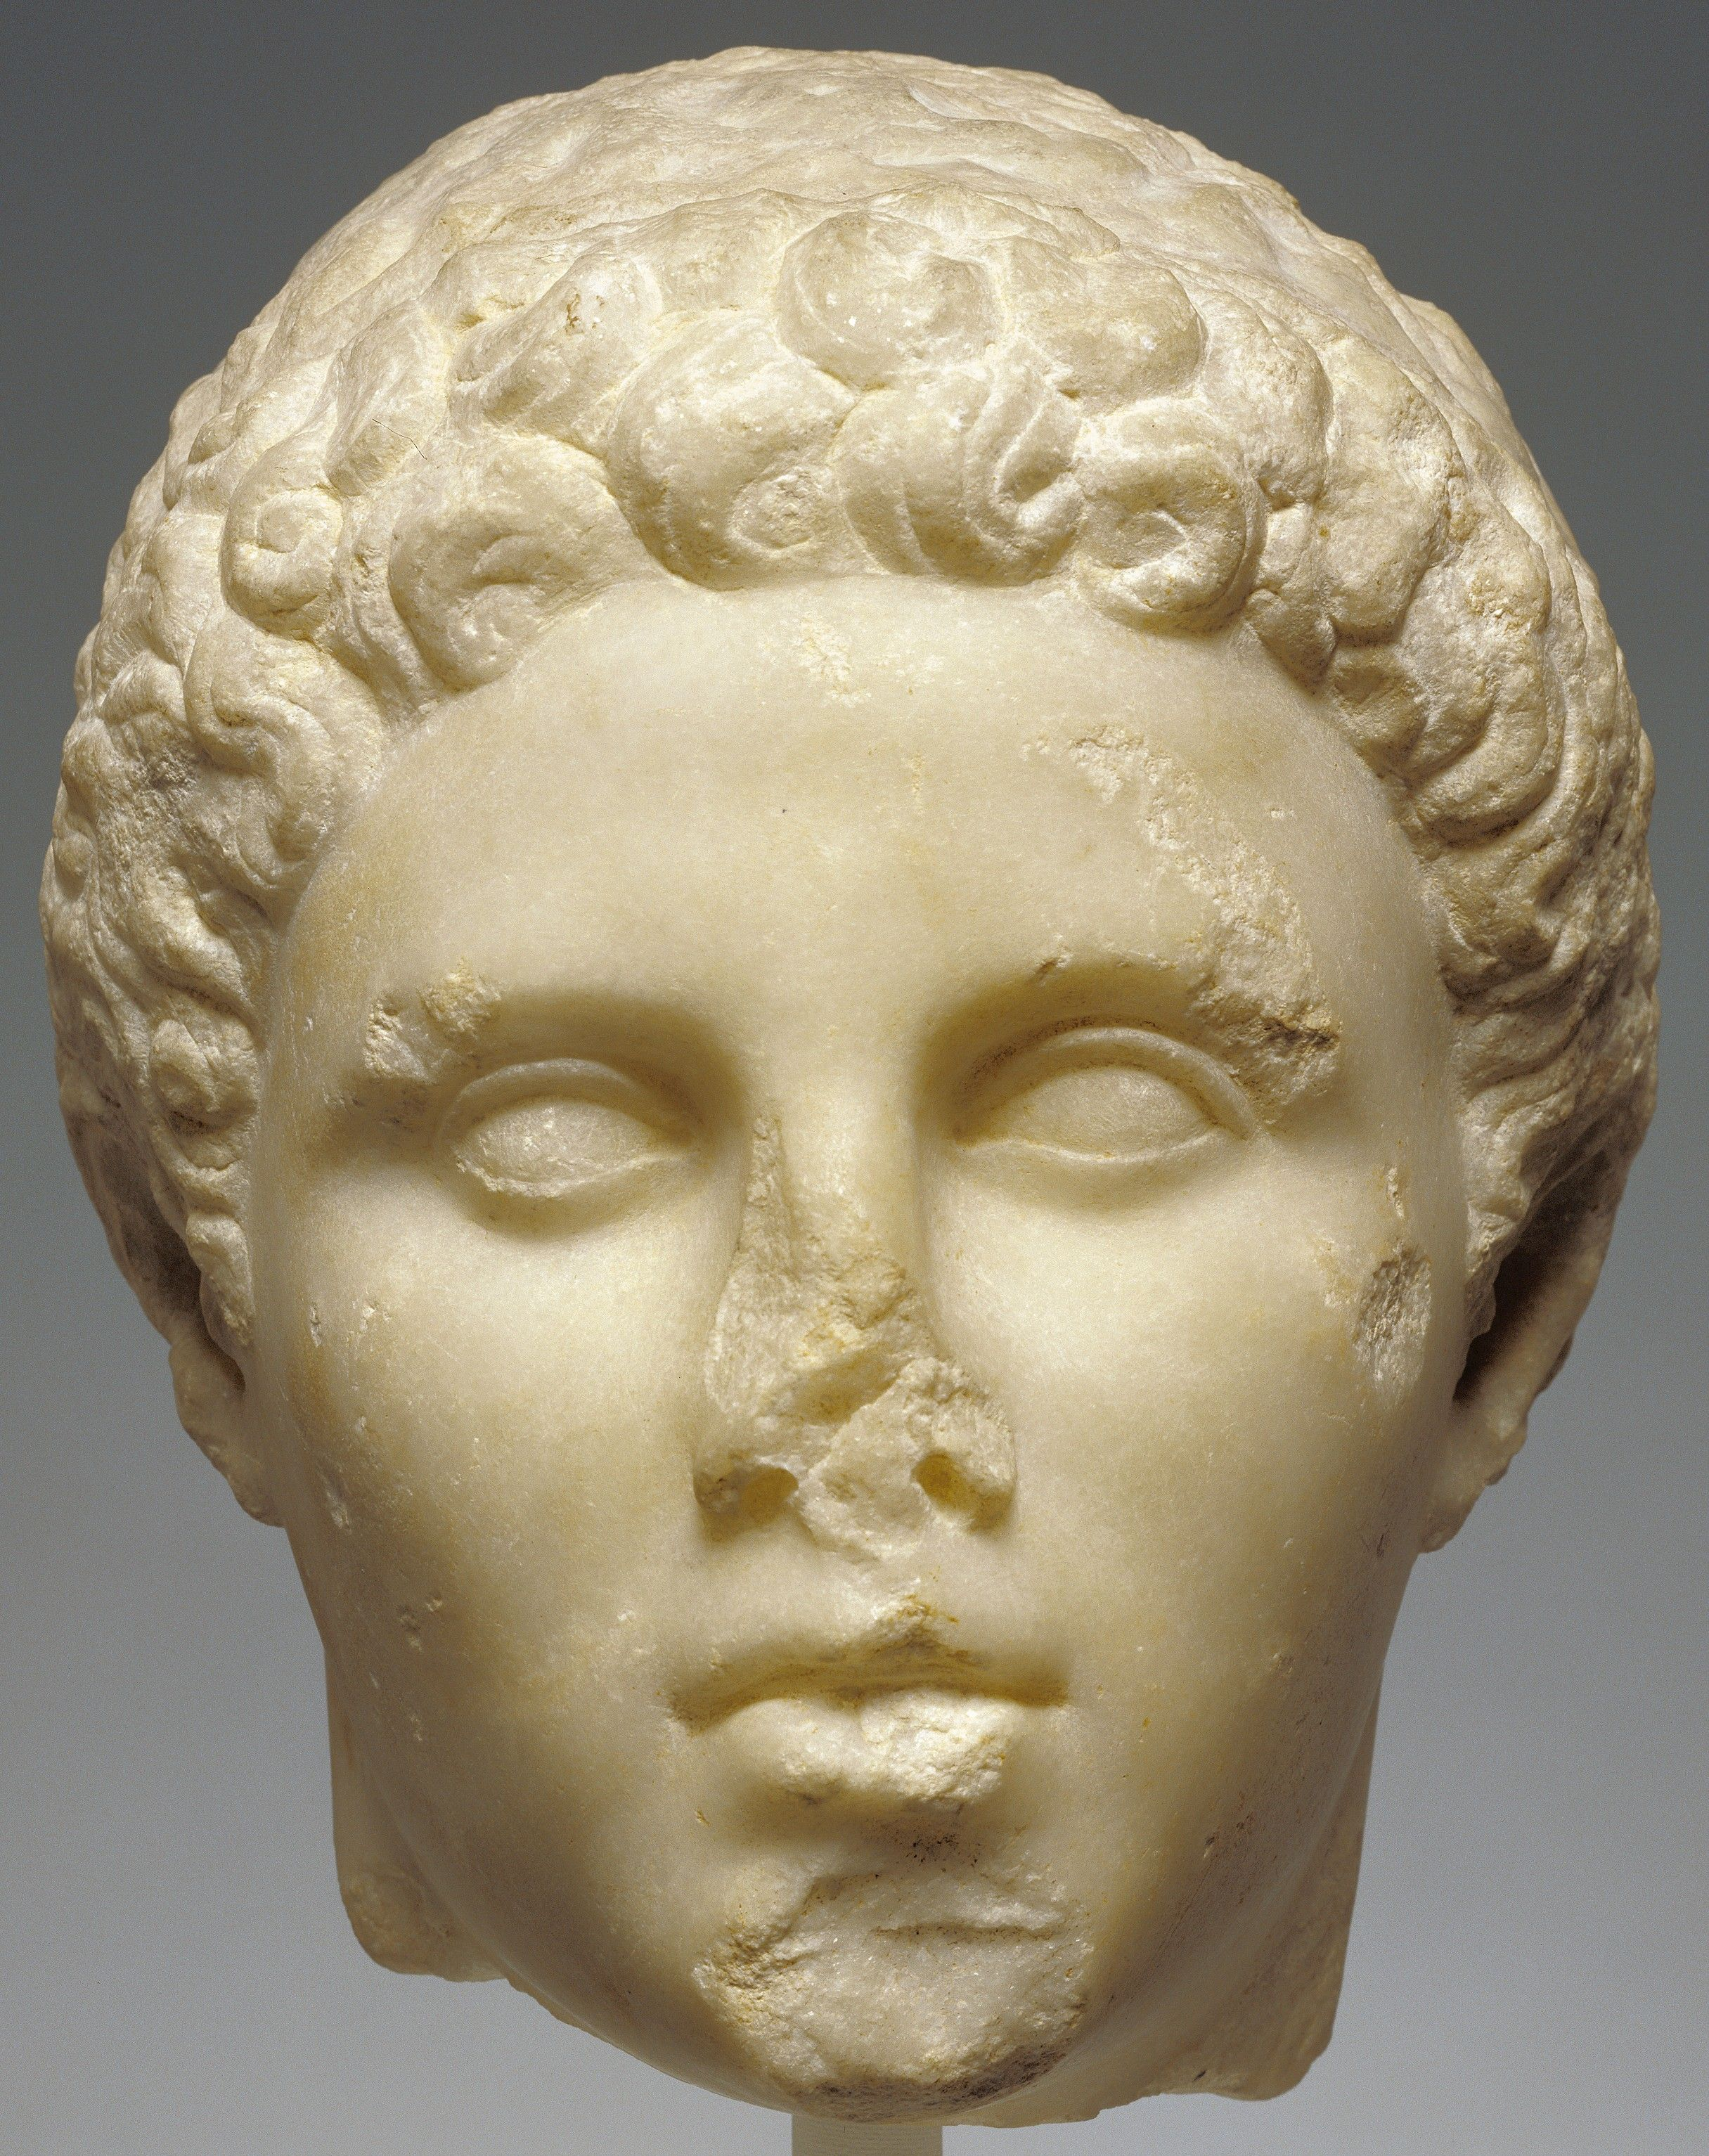 Head of hephaistion sculpted in marble best friend of alexander head of hephaistion sculpted in marble best friend of alexander the great macedonia kristyandbryce Choice Image